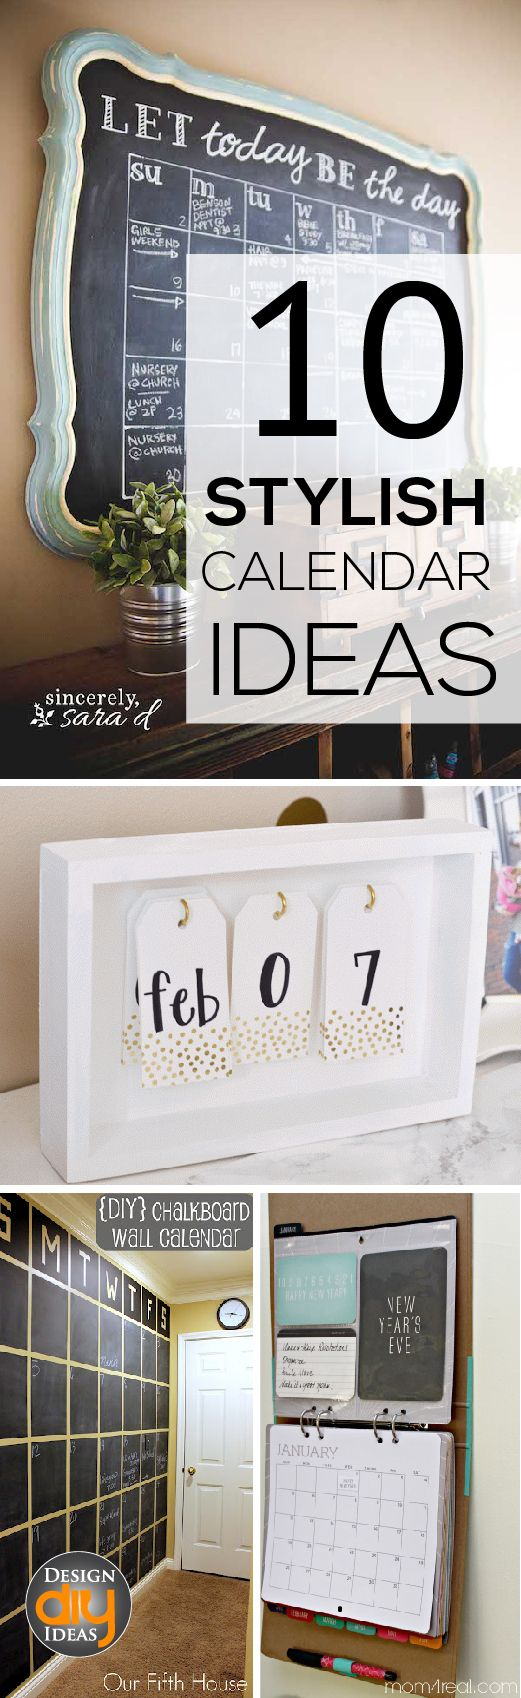 Calendar Ideas For Home : Clear calendars make it easy for the whole family check out these